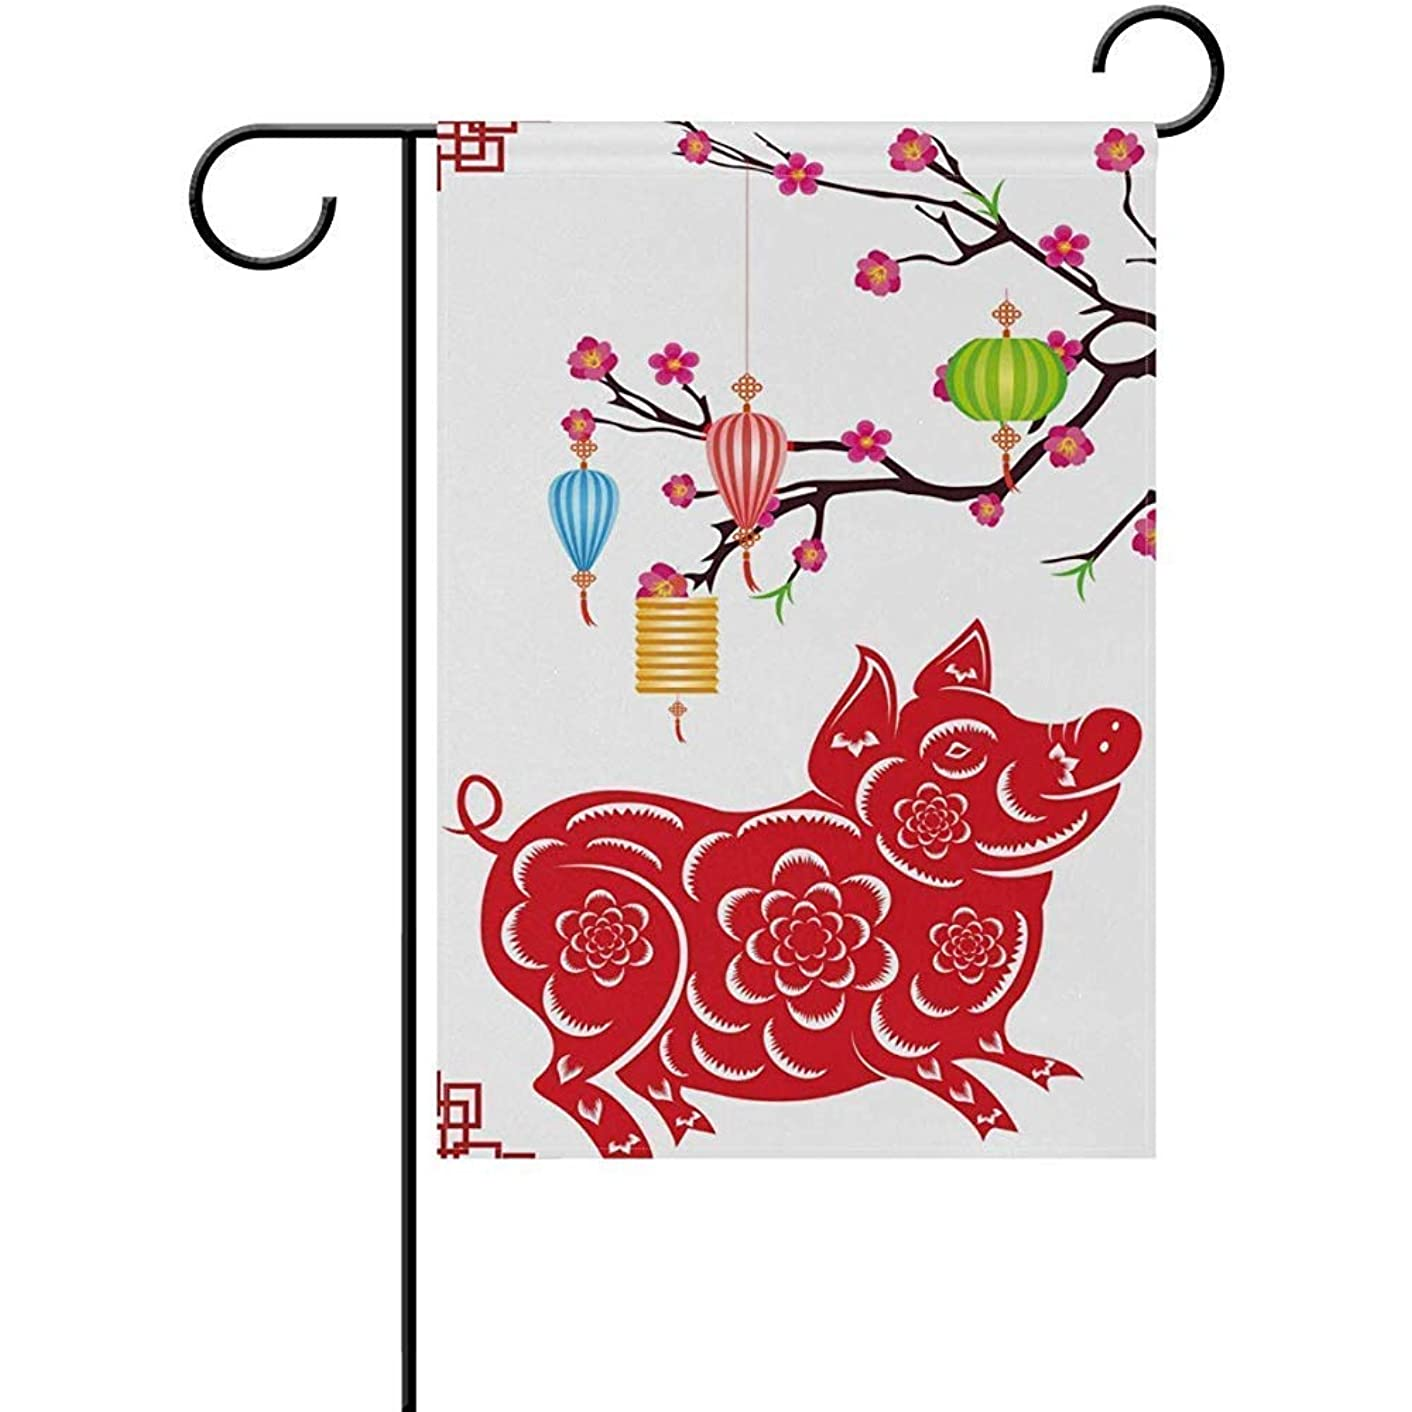 Sandayun88x Garden Flag Decorative Abstract Red Year Pig 2019 Double Sided Polyester Garden Flag Banner 12.5 x 18 Inch Two Sided for Outdoor Home Garden Flower Pot Decor